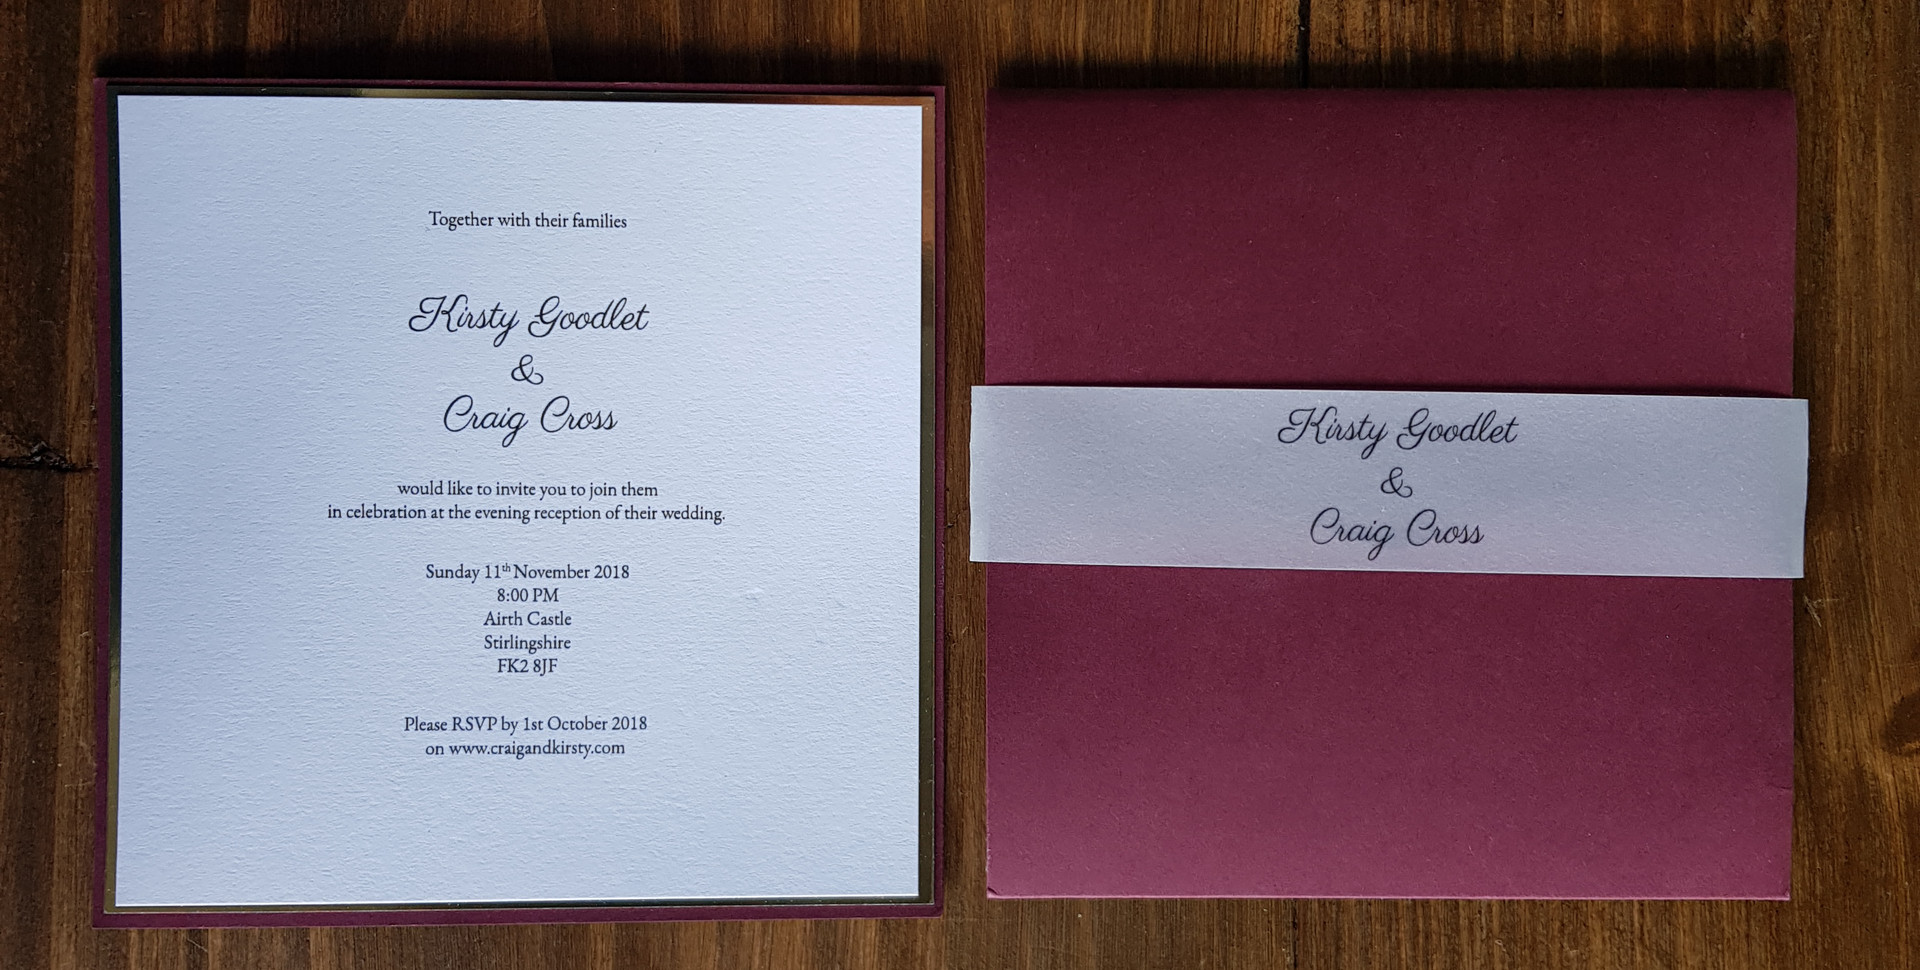 Kirsty - Wedding invitations